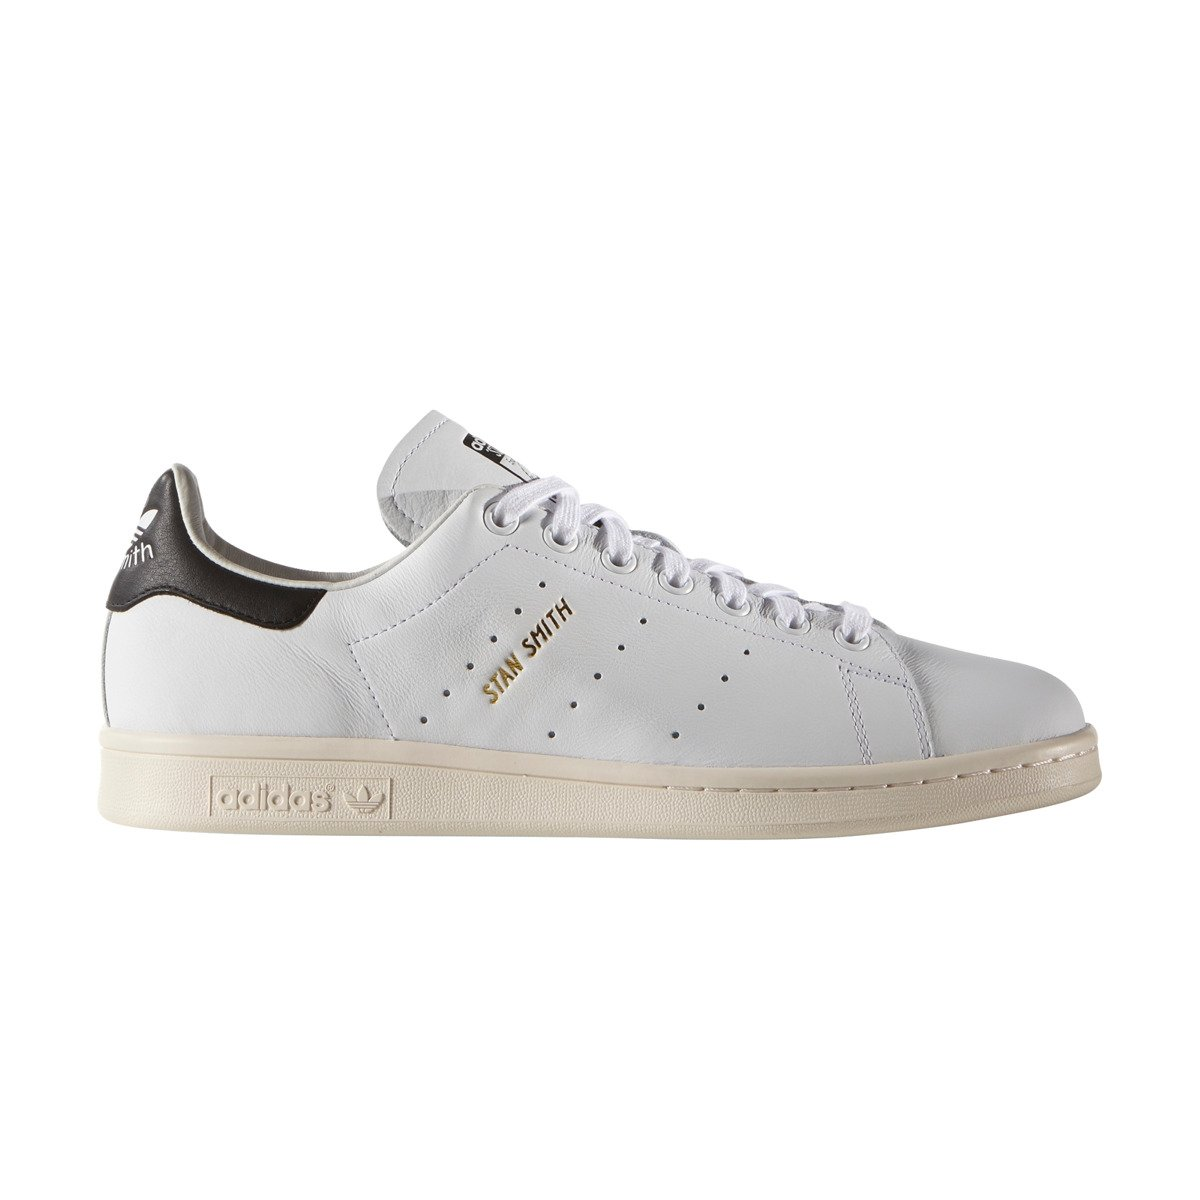 bdb7395d35c12 Adidas Stan Smith - S75076 - Basketo.pl